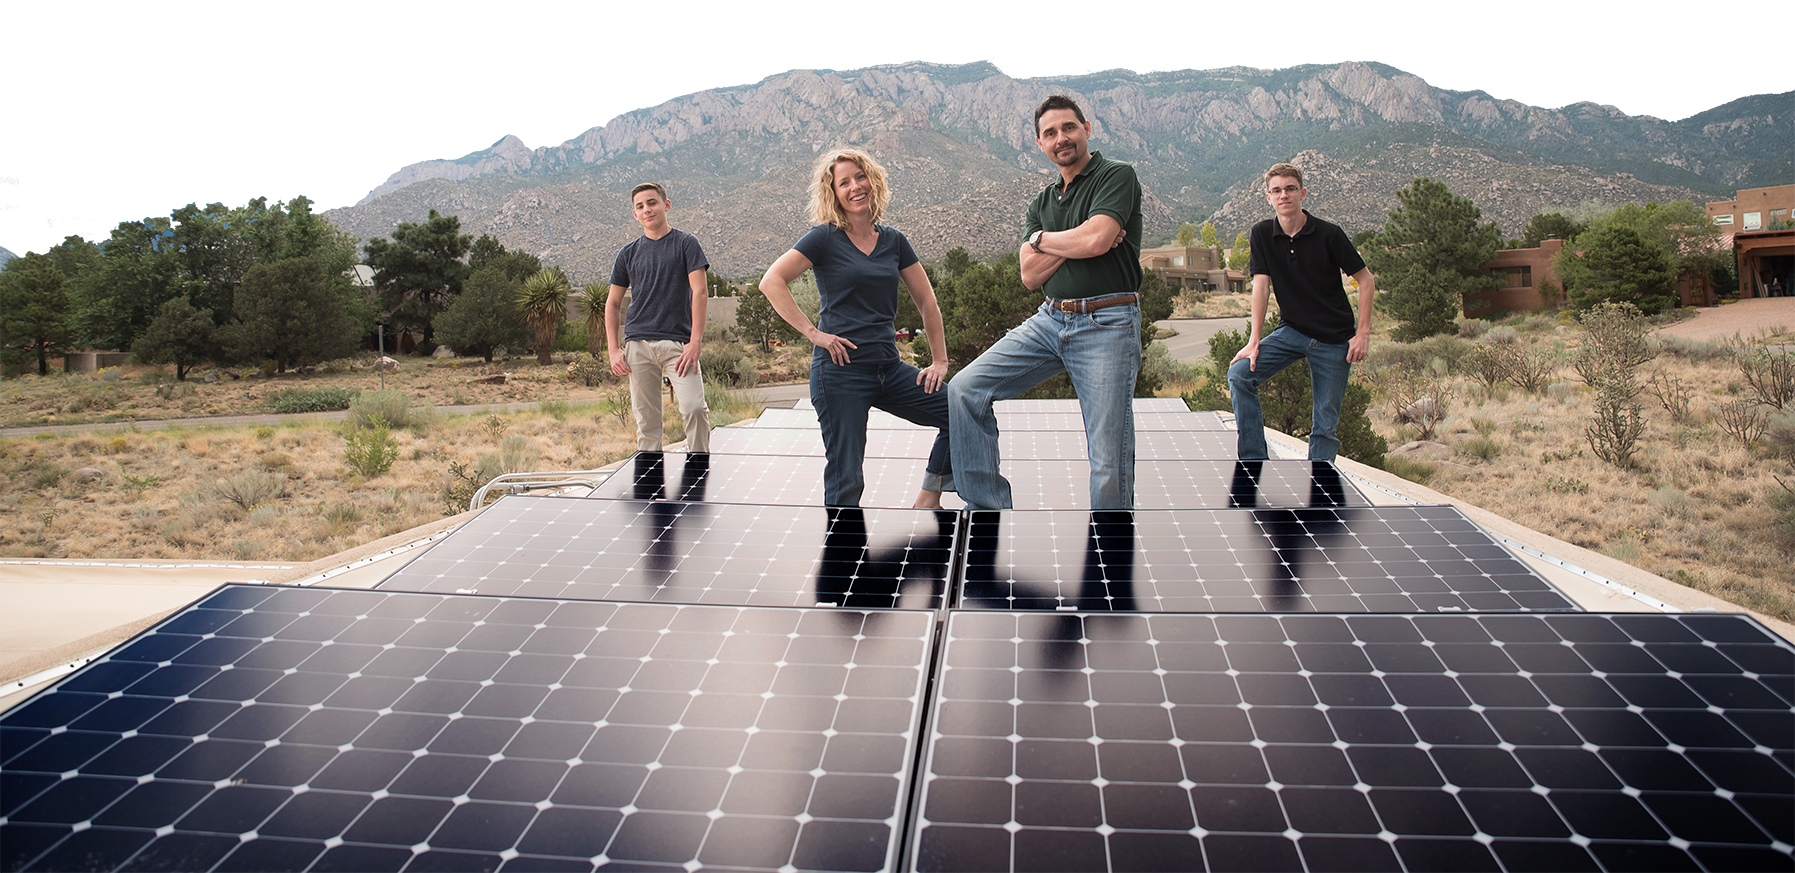 Solar Panel Installers in Rio Rancho, NM